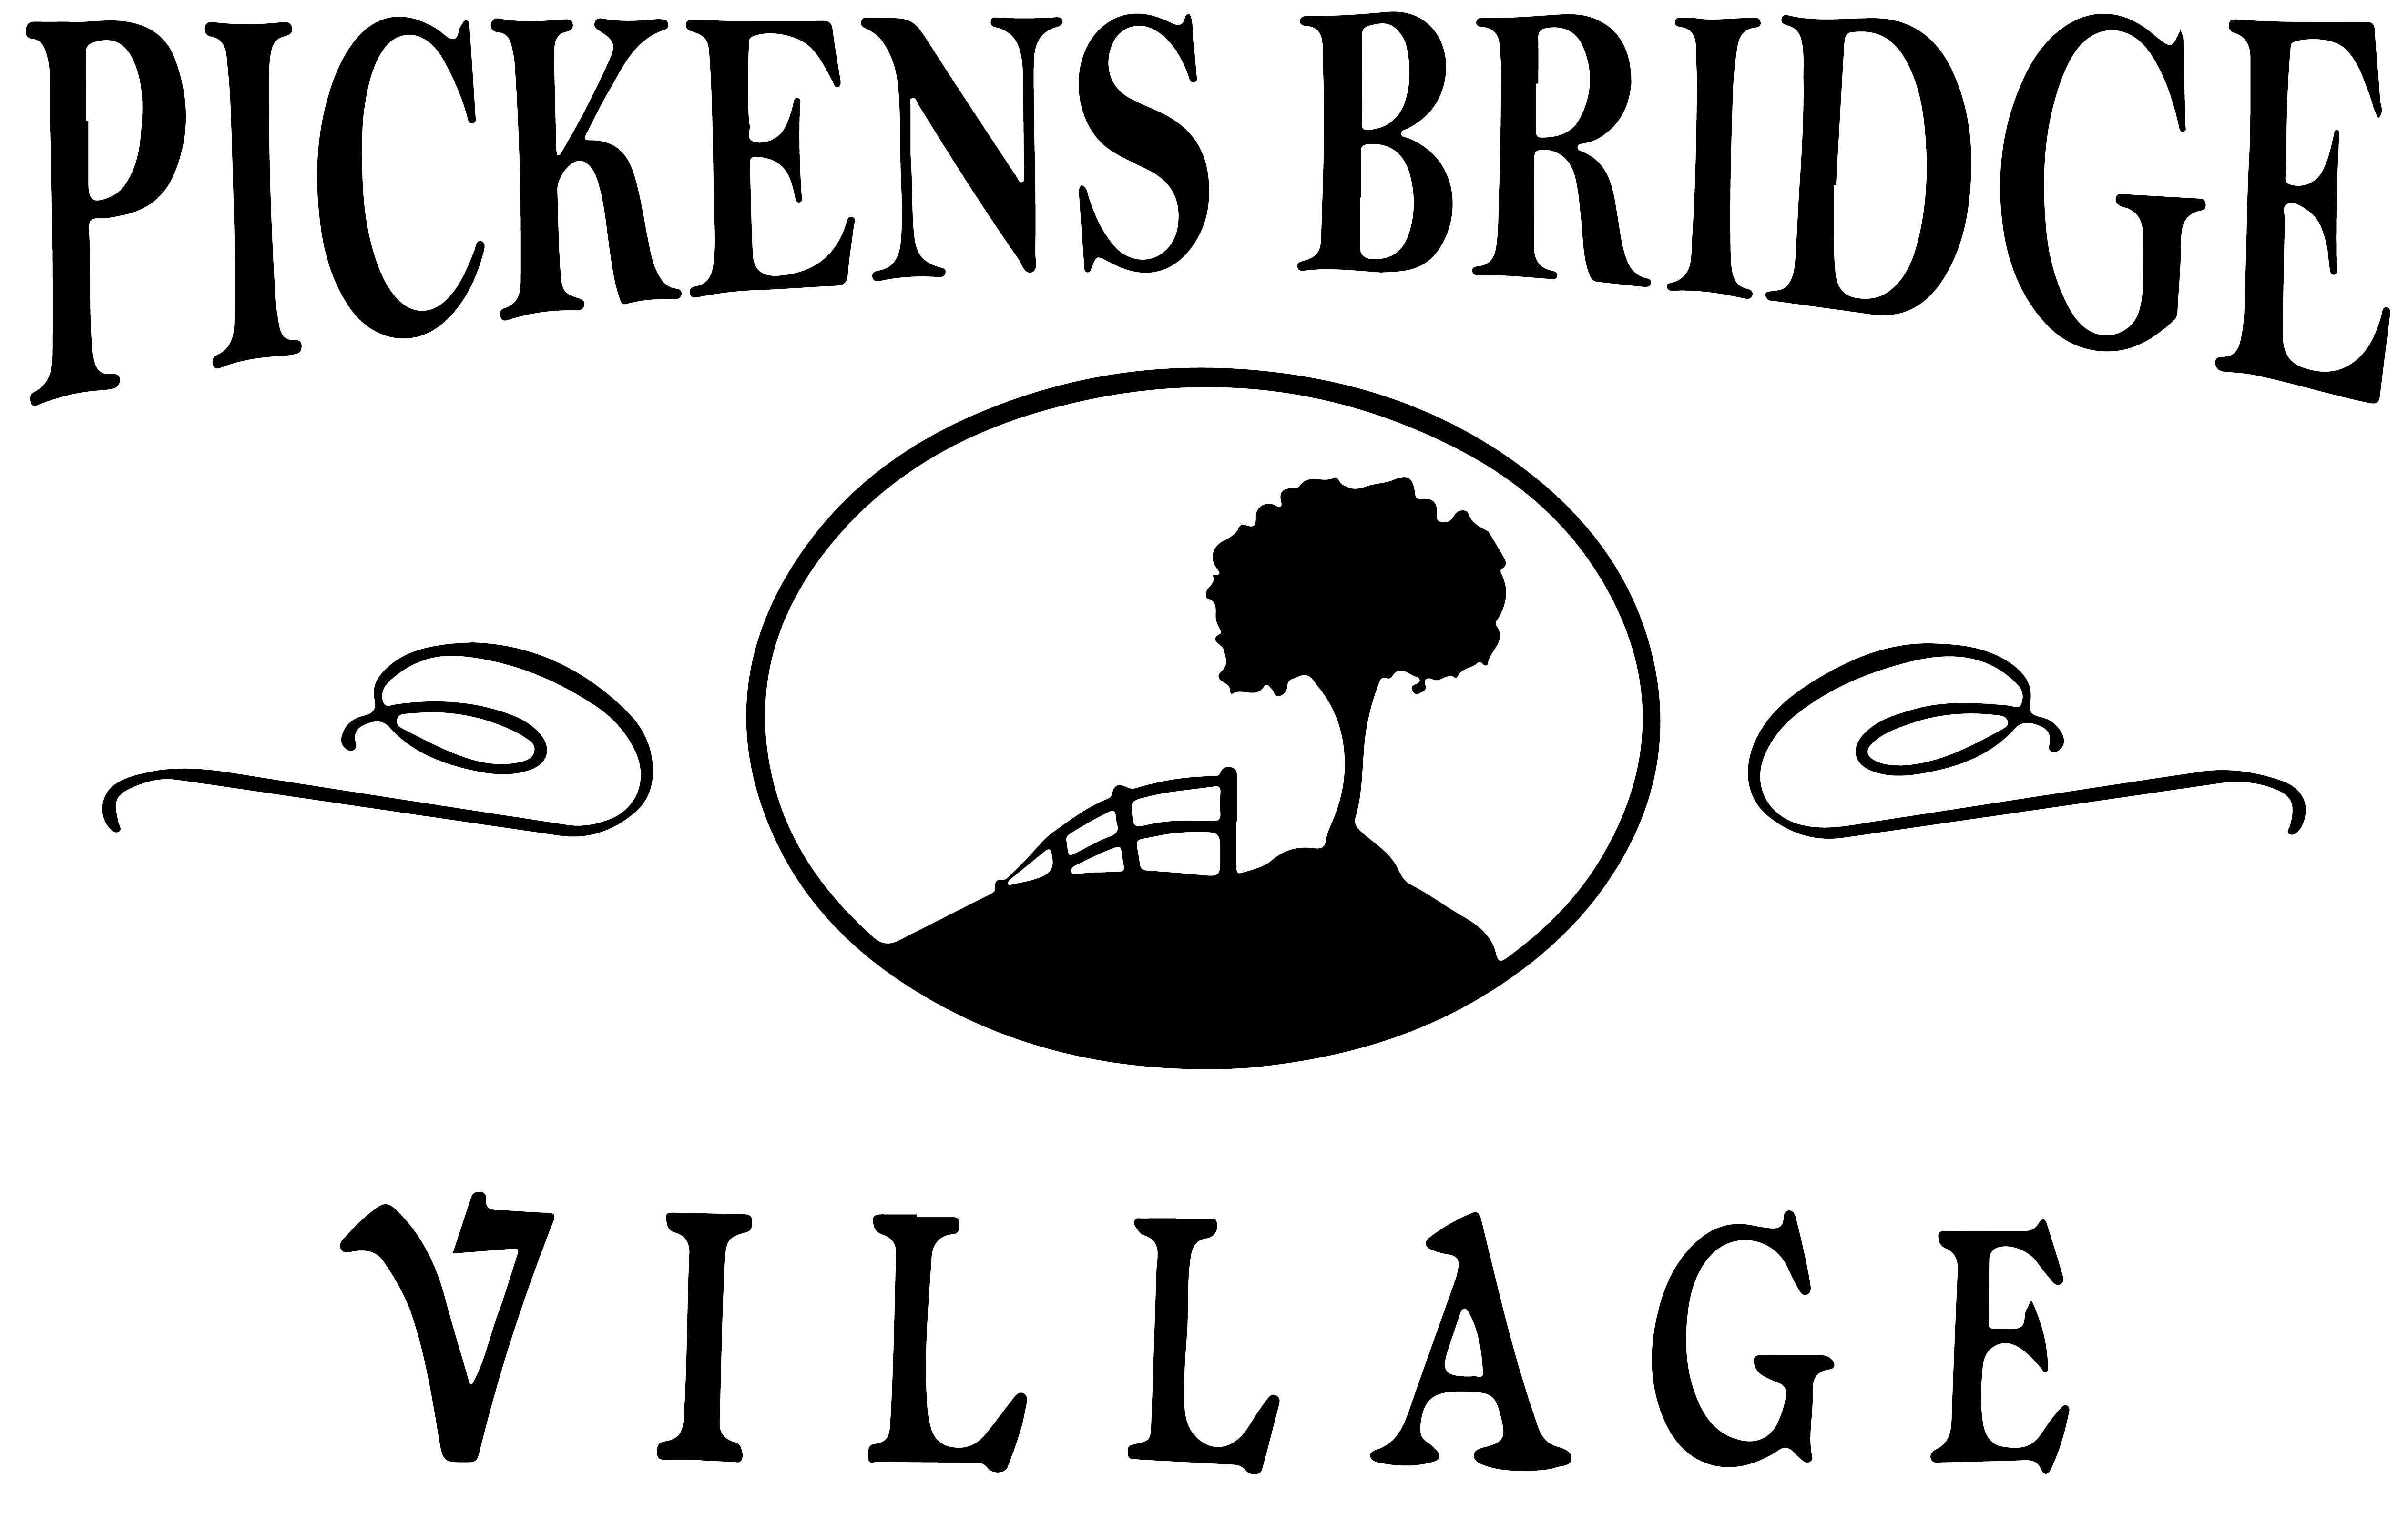 Property Sign For Pickens Bridge Village Apartments Now Leasing